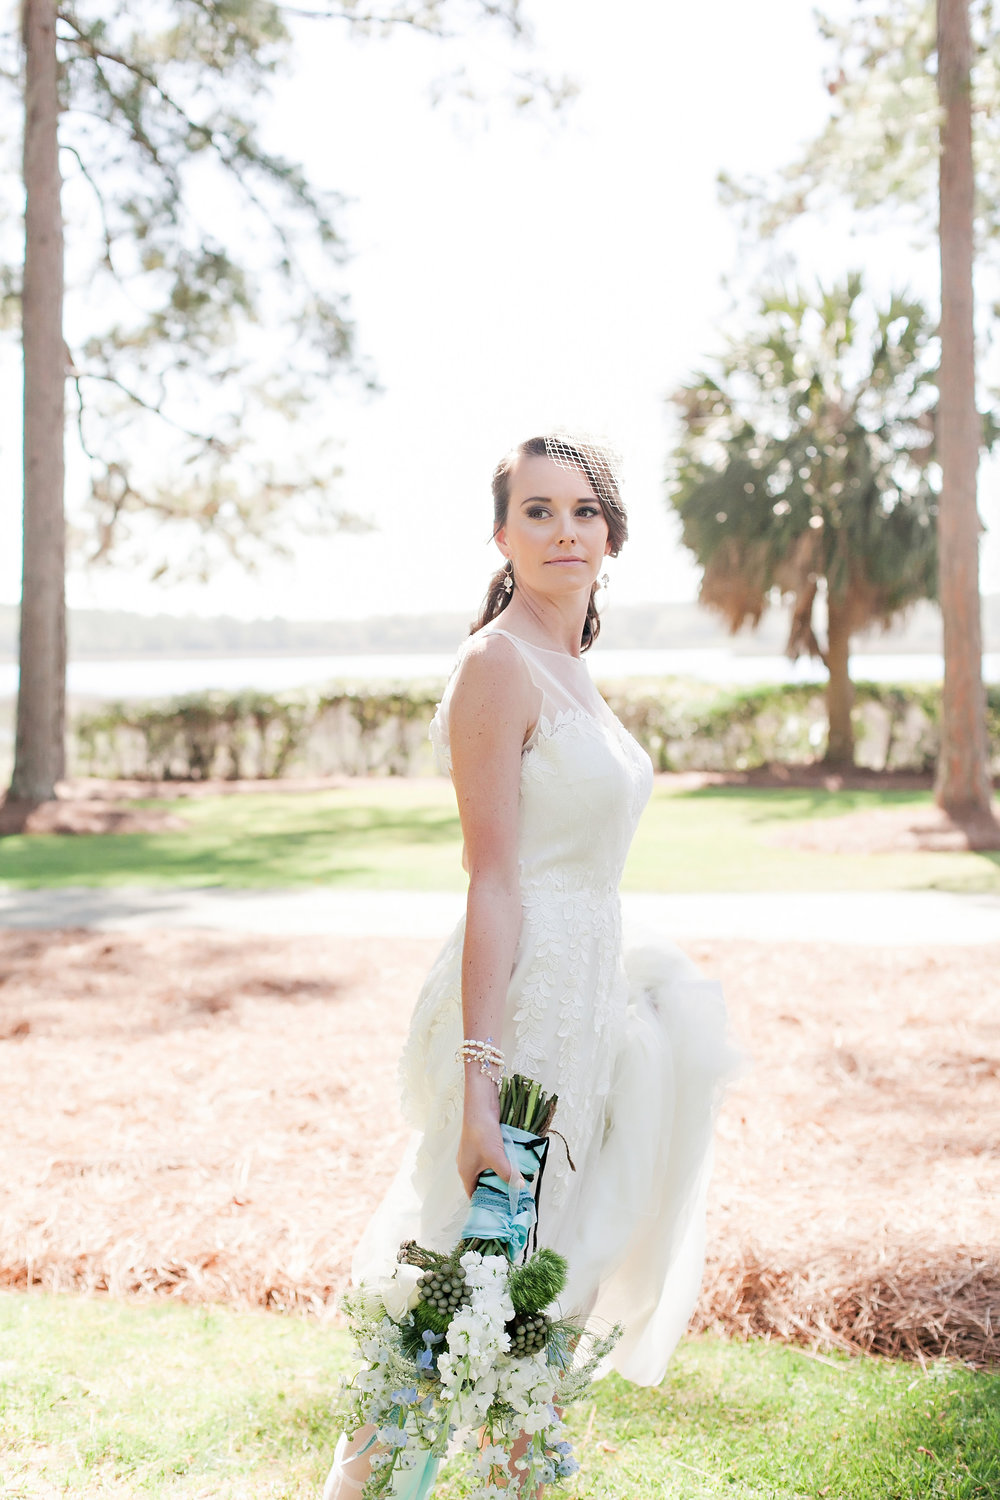 heather-kline-photography-oldfield-river-club-wedding-savannah-wedding-photographer-ti-adora-ivory-and-beau-bridal-boutique-savannah-wedding-dresses-savannah-bridal-boutique-savannah-bridal-gowns-bridal-accessories-savannah-wedding-planner-9.jpg